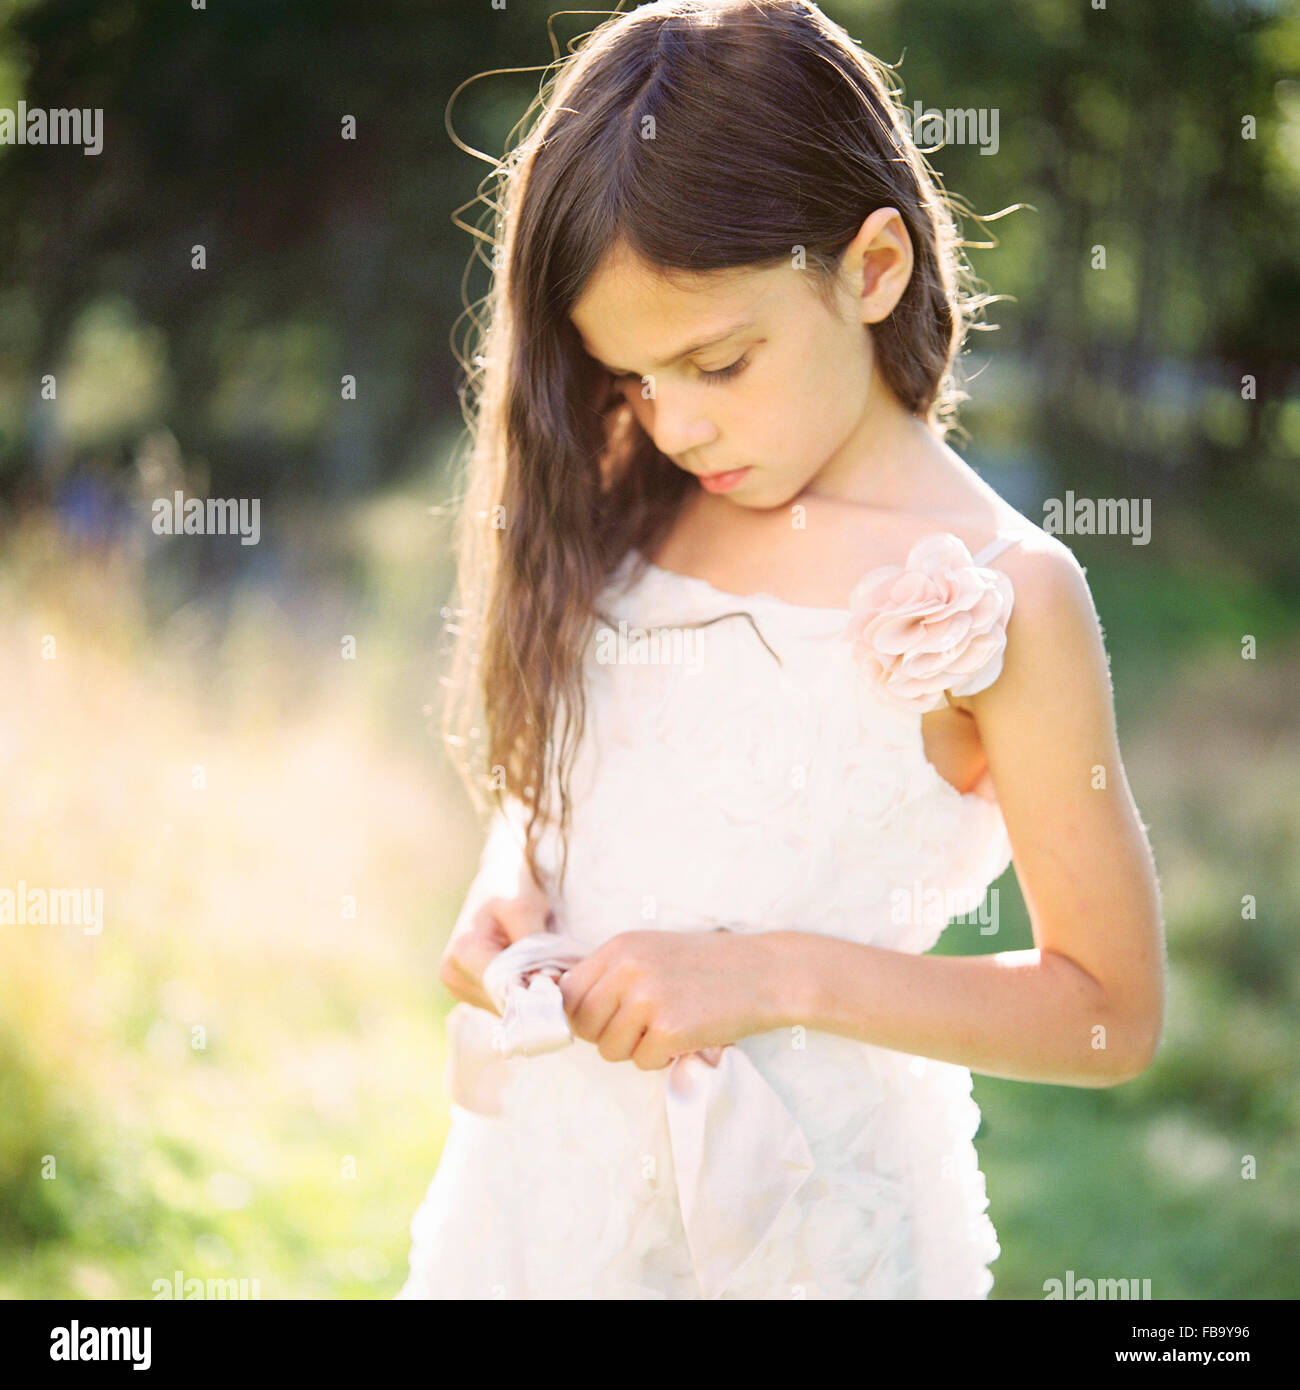 Sweden, Vastmanland, Portrait of girl (6-7) in white dress - Stock Image